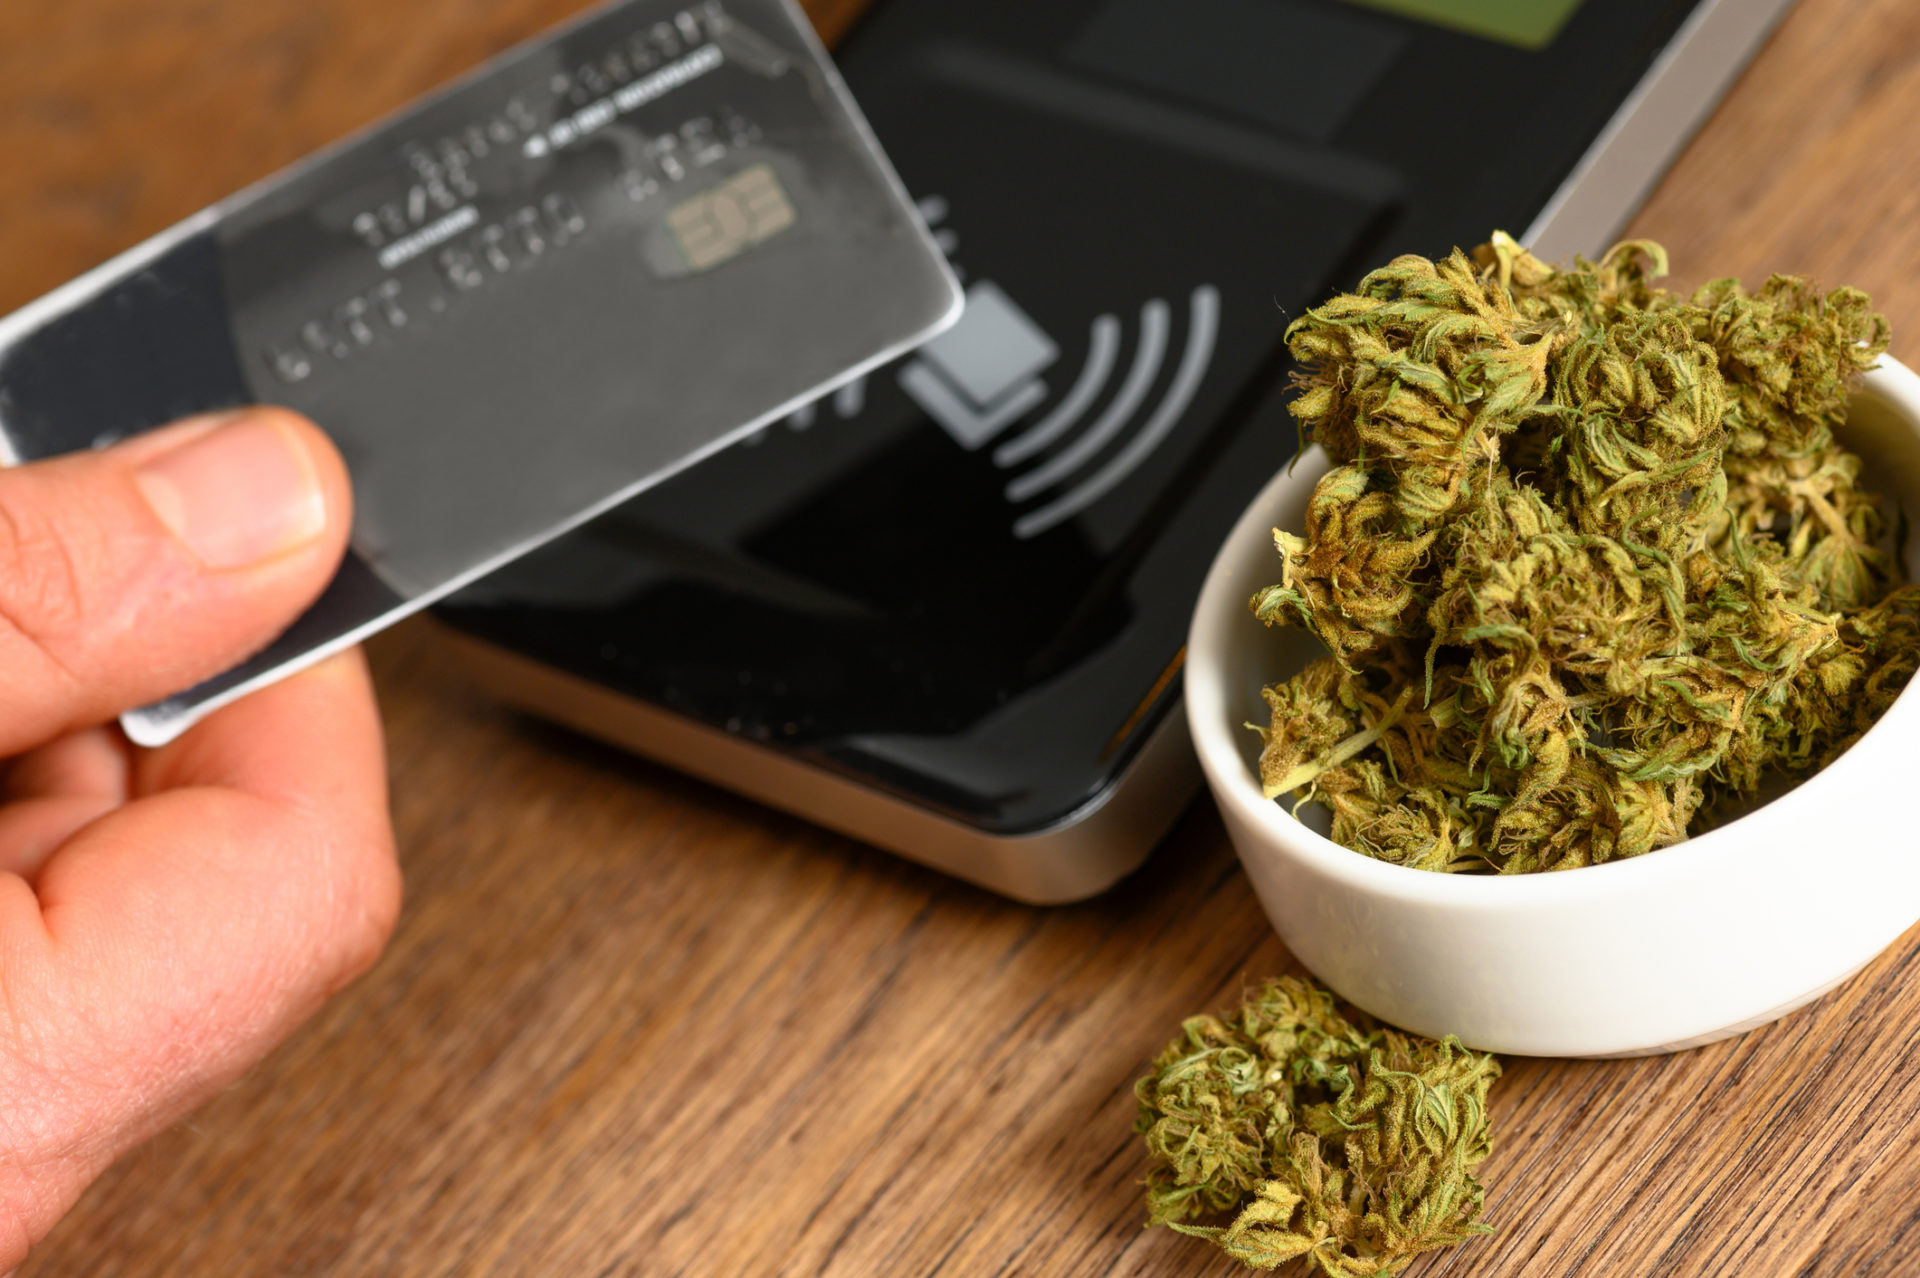 Data Security Demonstrated In The Cannabis Industry